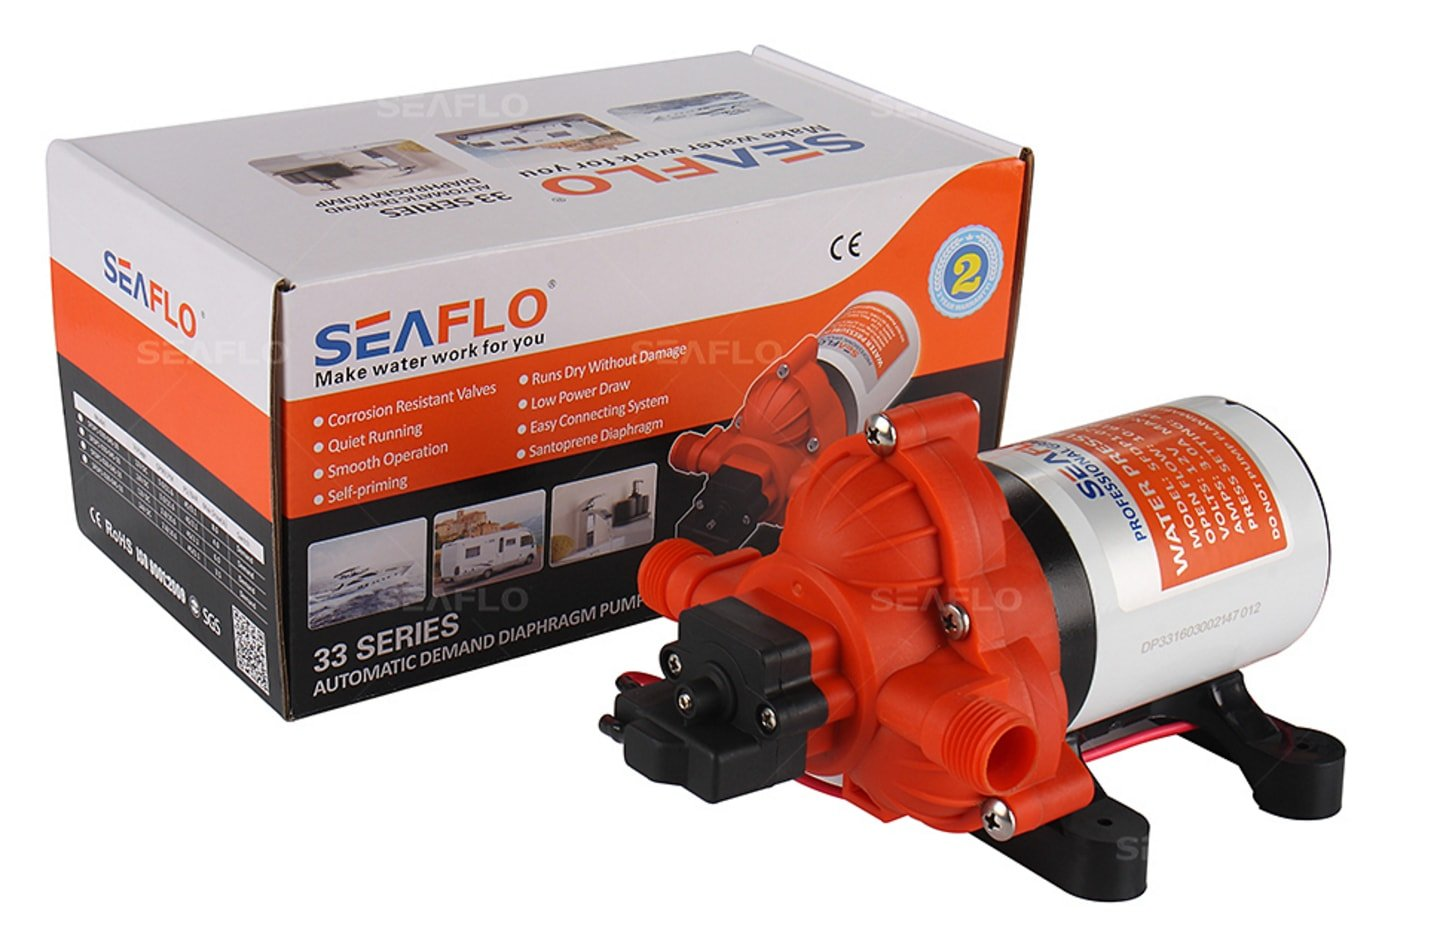 SEAFLO 33-Series Industrial Water Pressure Pump w/Power Plug for Wall Outlet - 115VAC, 3.3 GPM, 45 PSI by Seaflo (Image #4)